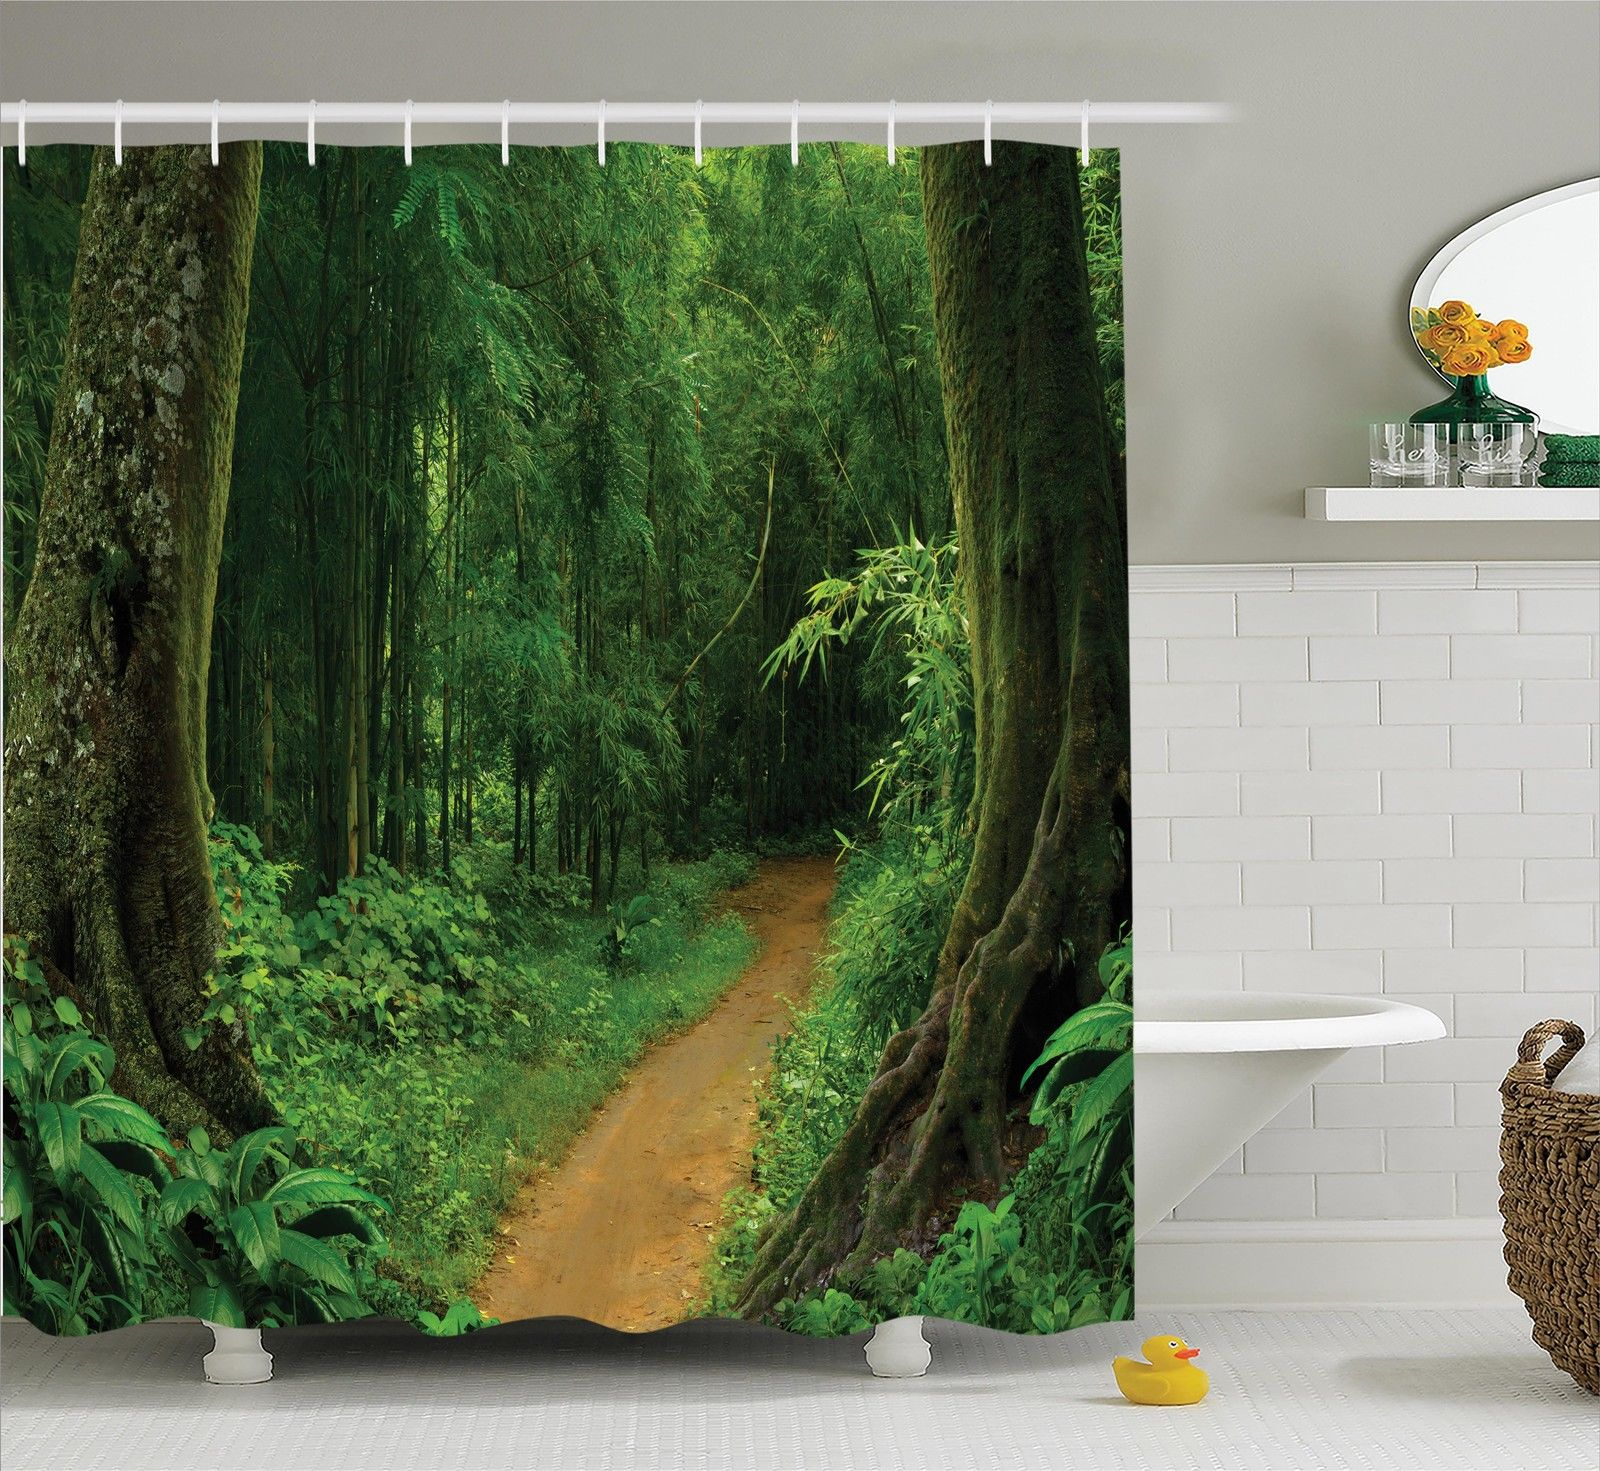 tropical decor shower curtain set tropical jungle forest with trees pathway foliage wilderness nature landscape